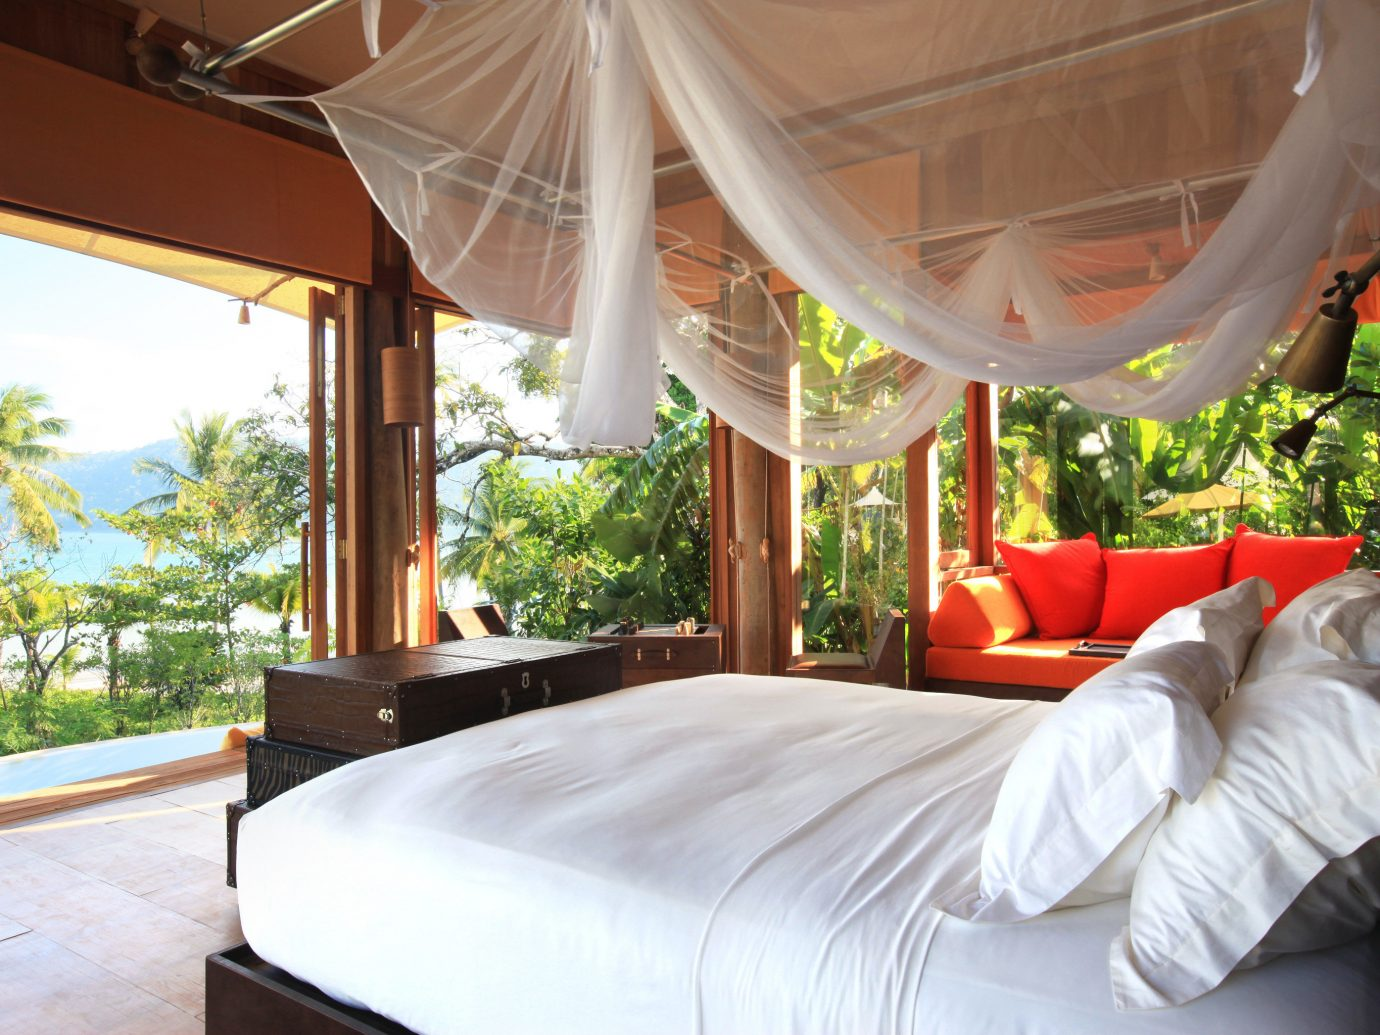 Bedroom view at Soneva Kiri, Koh Kut, Thailand